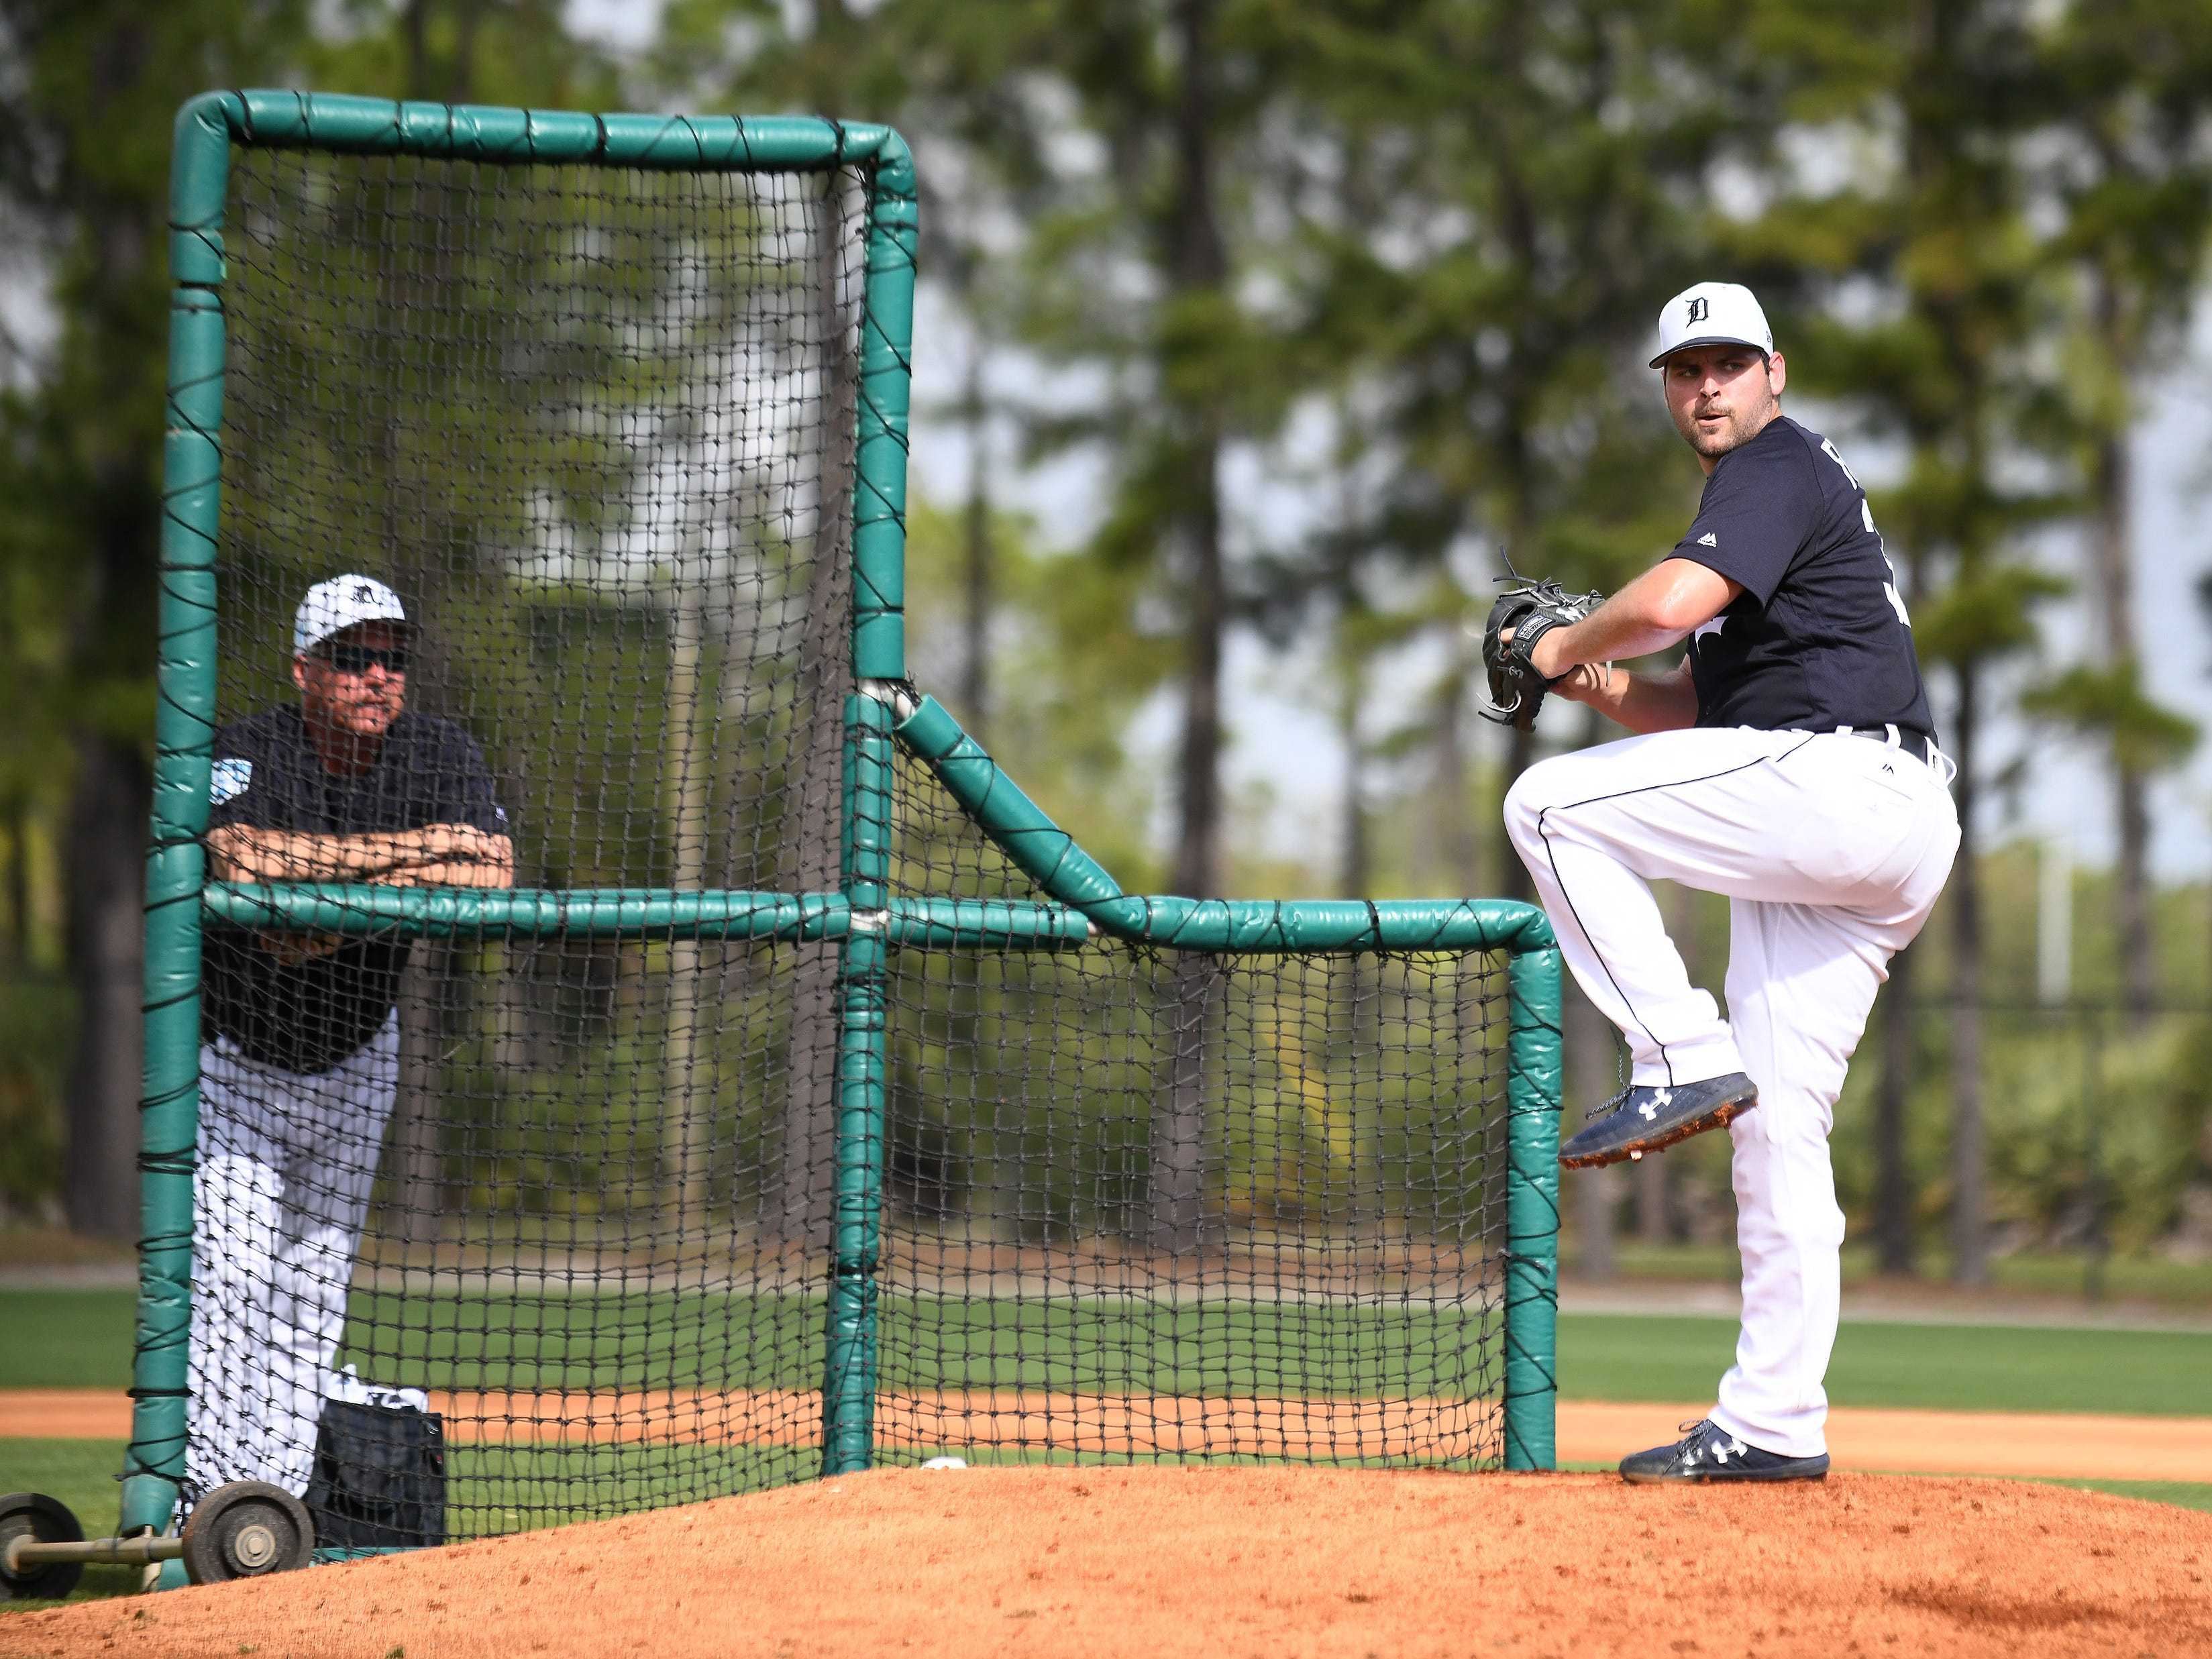 Tigers pitching coach Rick Anderson, left, watches pitcher Michael Fulmer throwing his first live batting session Thursday, Feb. 21, 2019, during the Tigers workout at spring training in Lakeland, Fla.